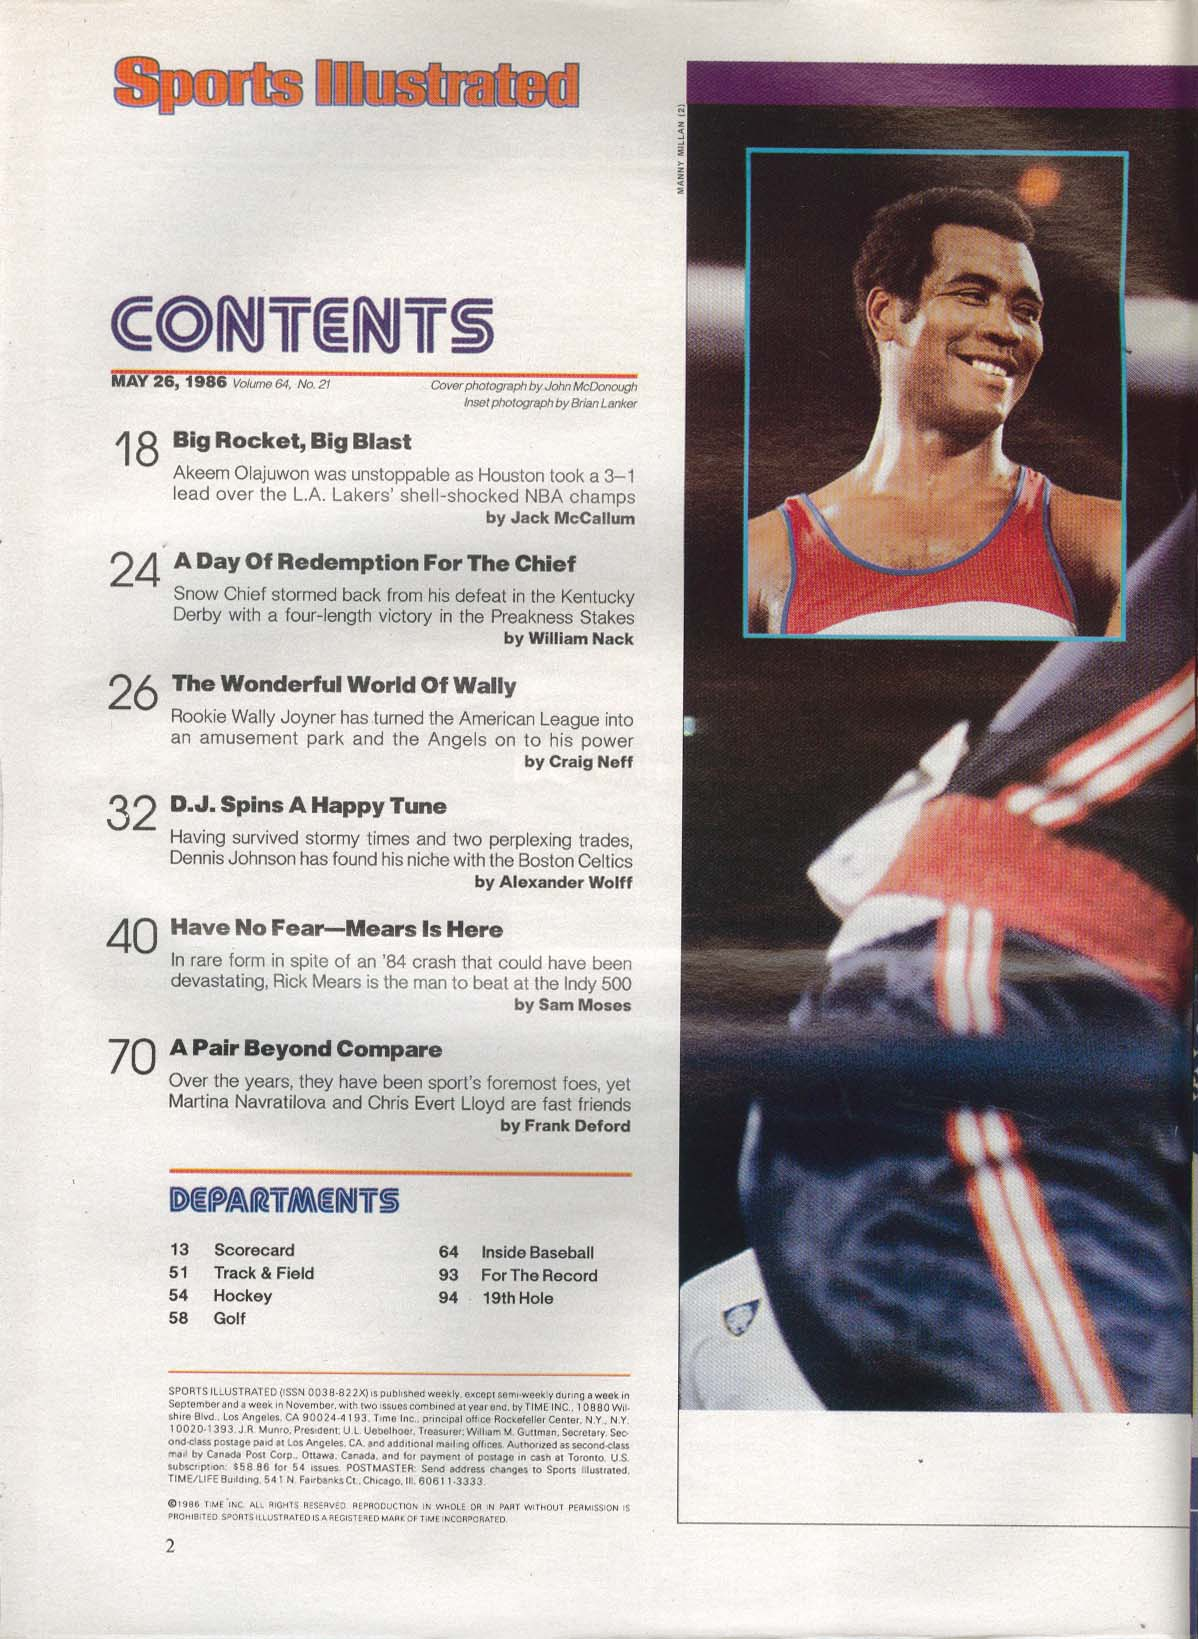 SPORTS ILLUSTRATED Akeem Olajuwon Chris Evert Martina Navratilova 5/26 1986